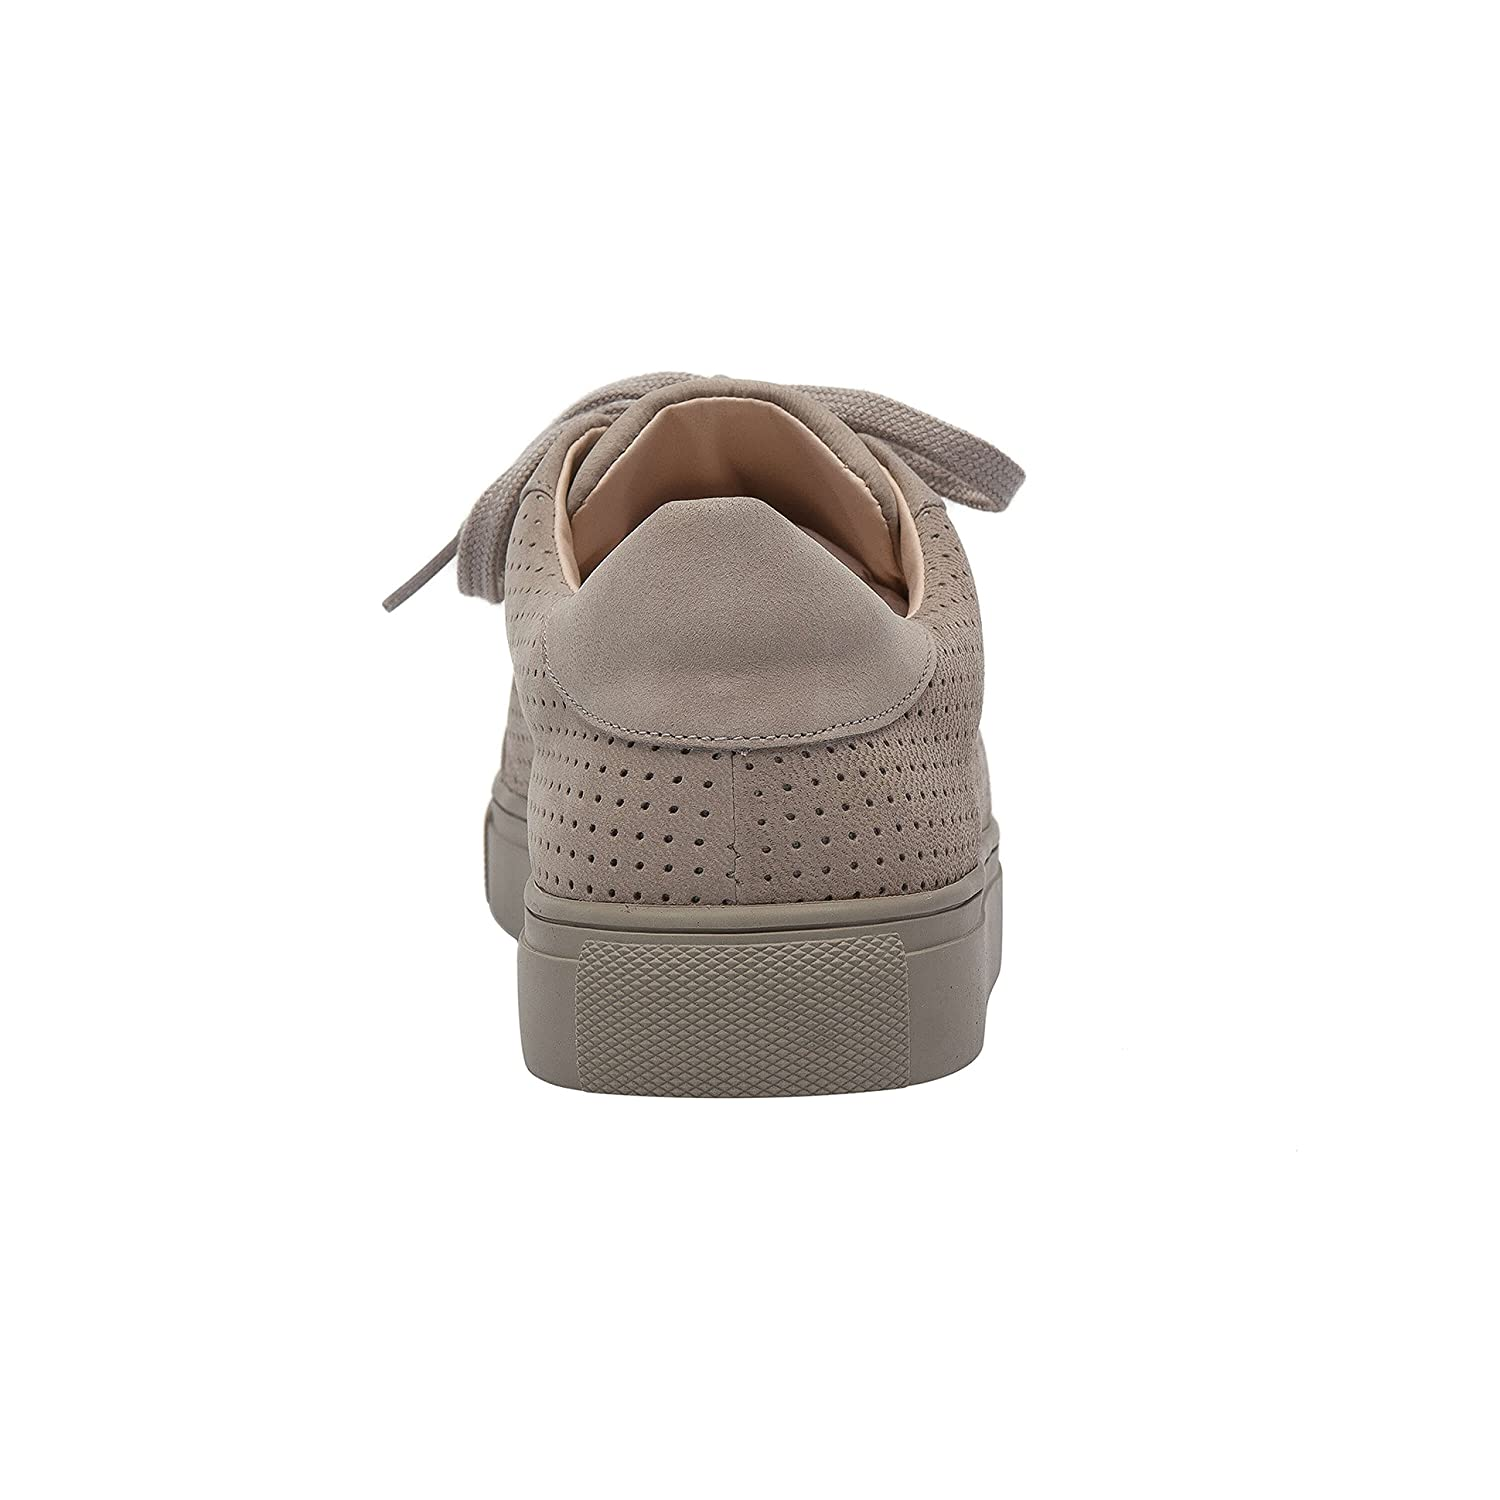 OLLYN | Women's Lace-up Perforated Leather Or Suede Comfortable Fashion US|Grey Sneaker B07B6DFLN6 7 B(M) US|Grey Fashion Nubuck 4a18d1